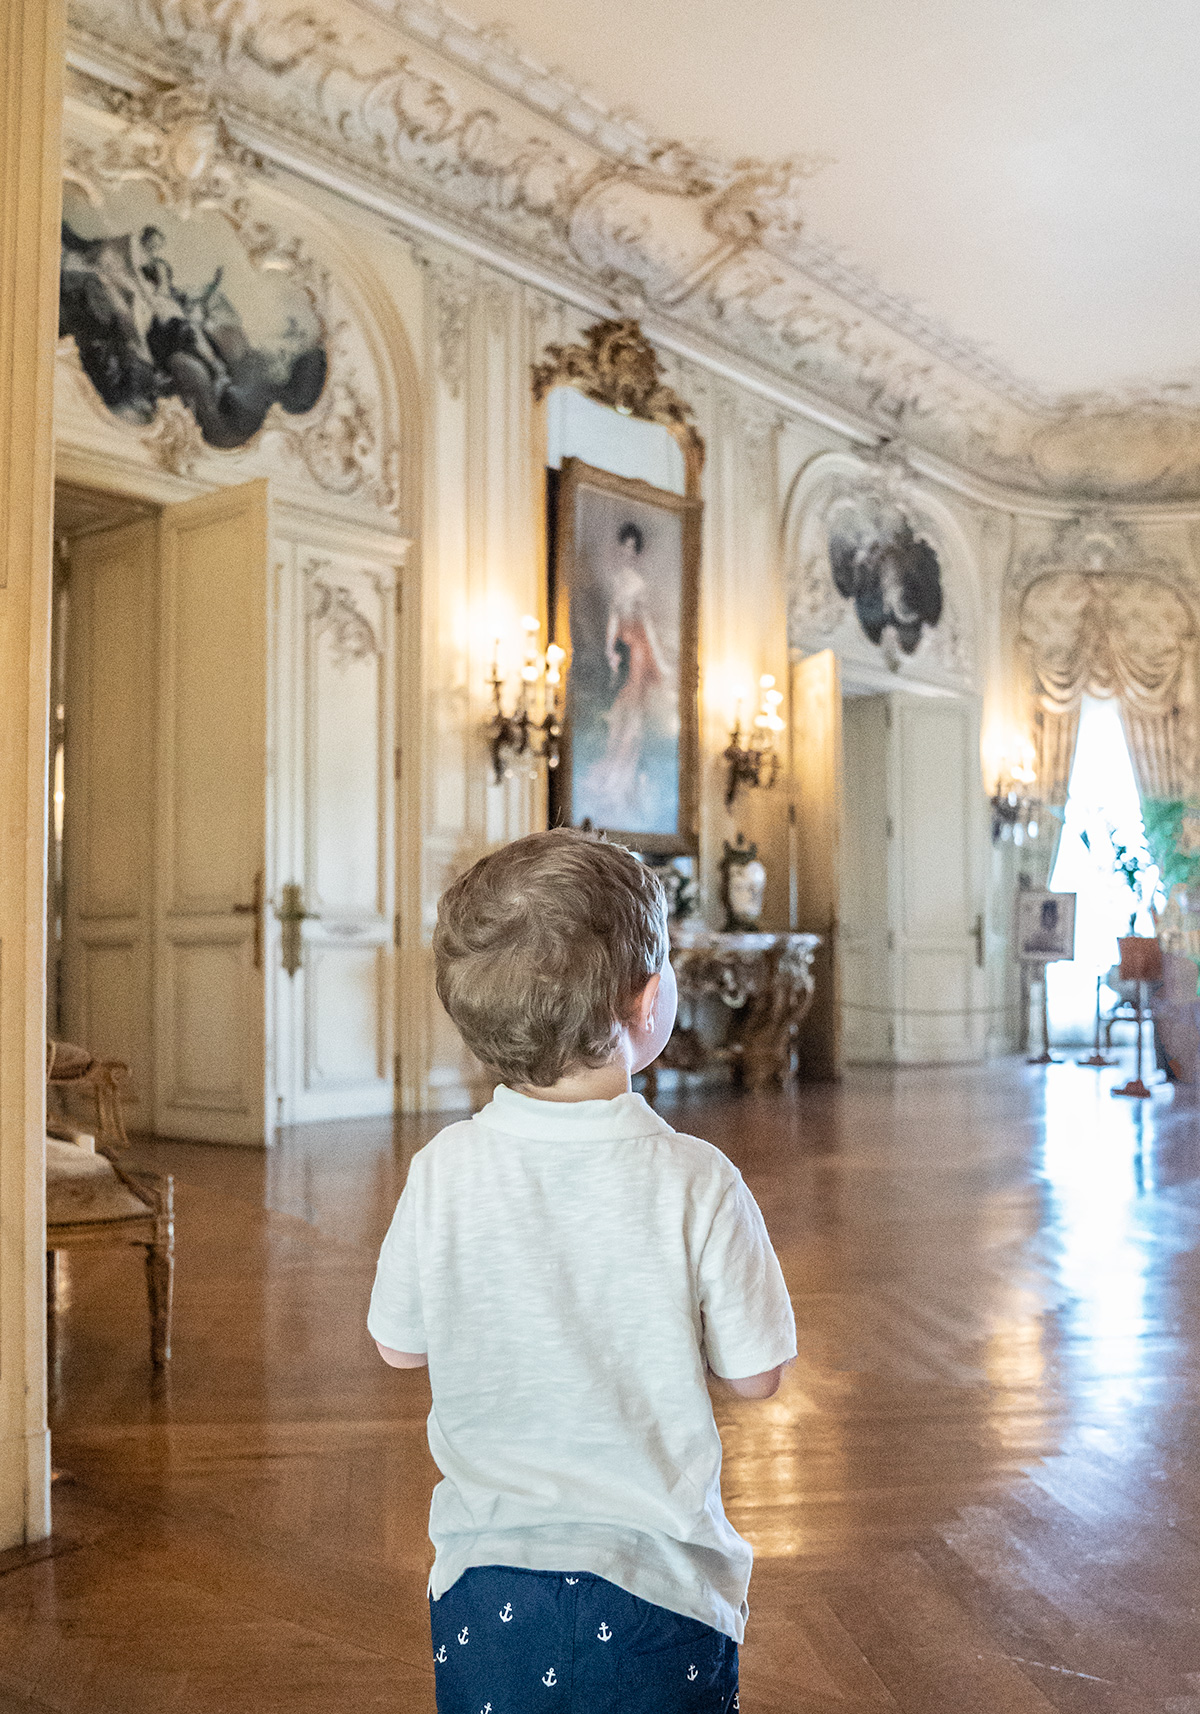 Take-A-Photo-Tour-of-The-Elms-Newport-Mansions